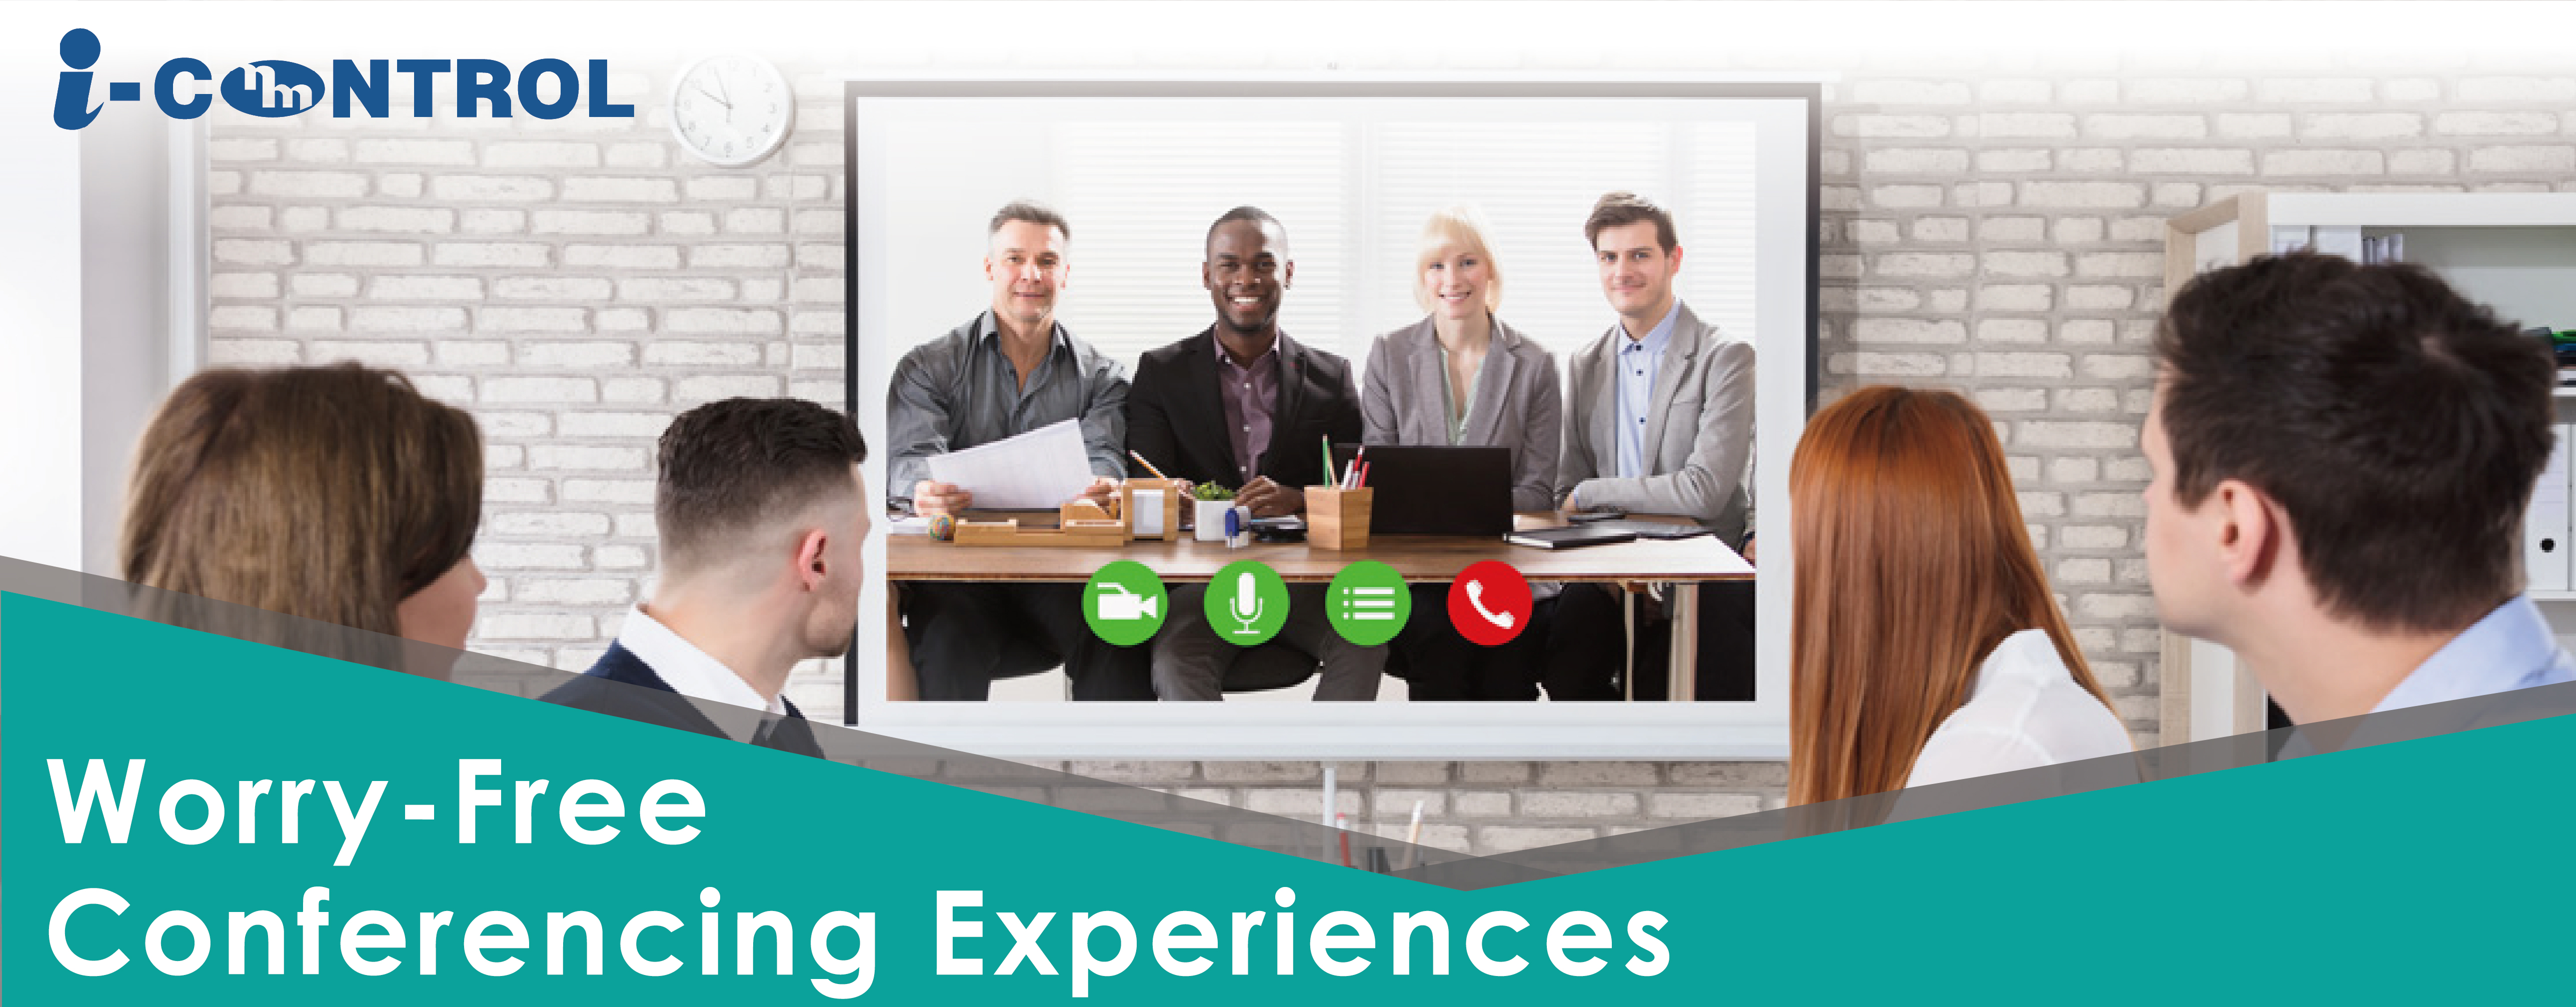 IC_Worry-Free-Conferencing-Solution-_Web-banner_工作區域-1